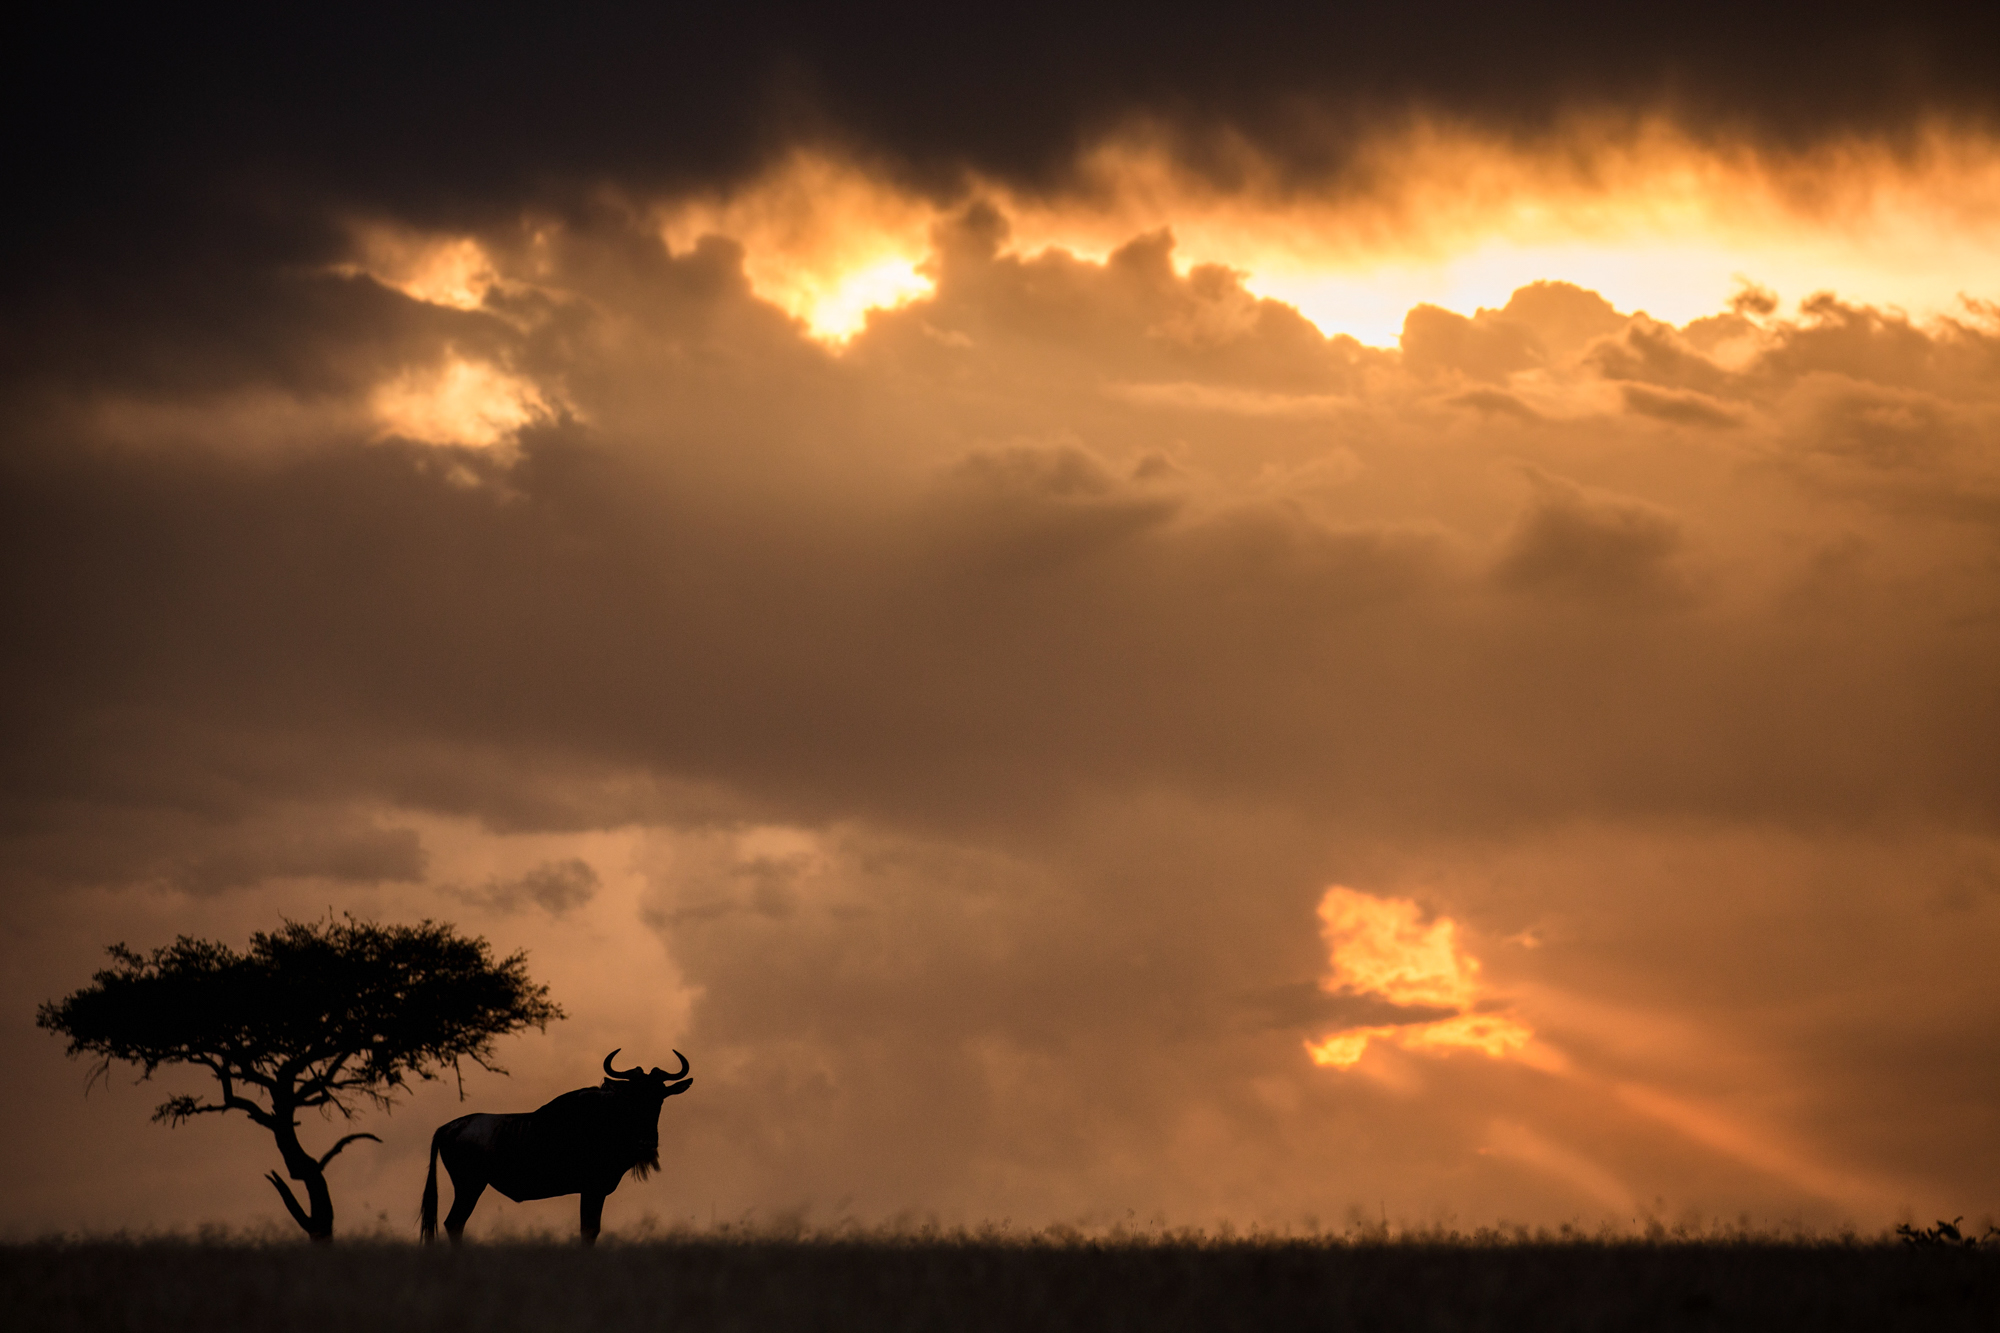 Silhouette of a ;one wildebeest set against a stormy sky at sunset